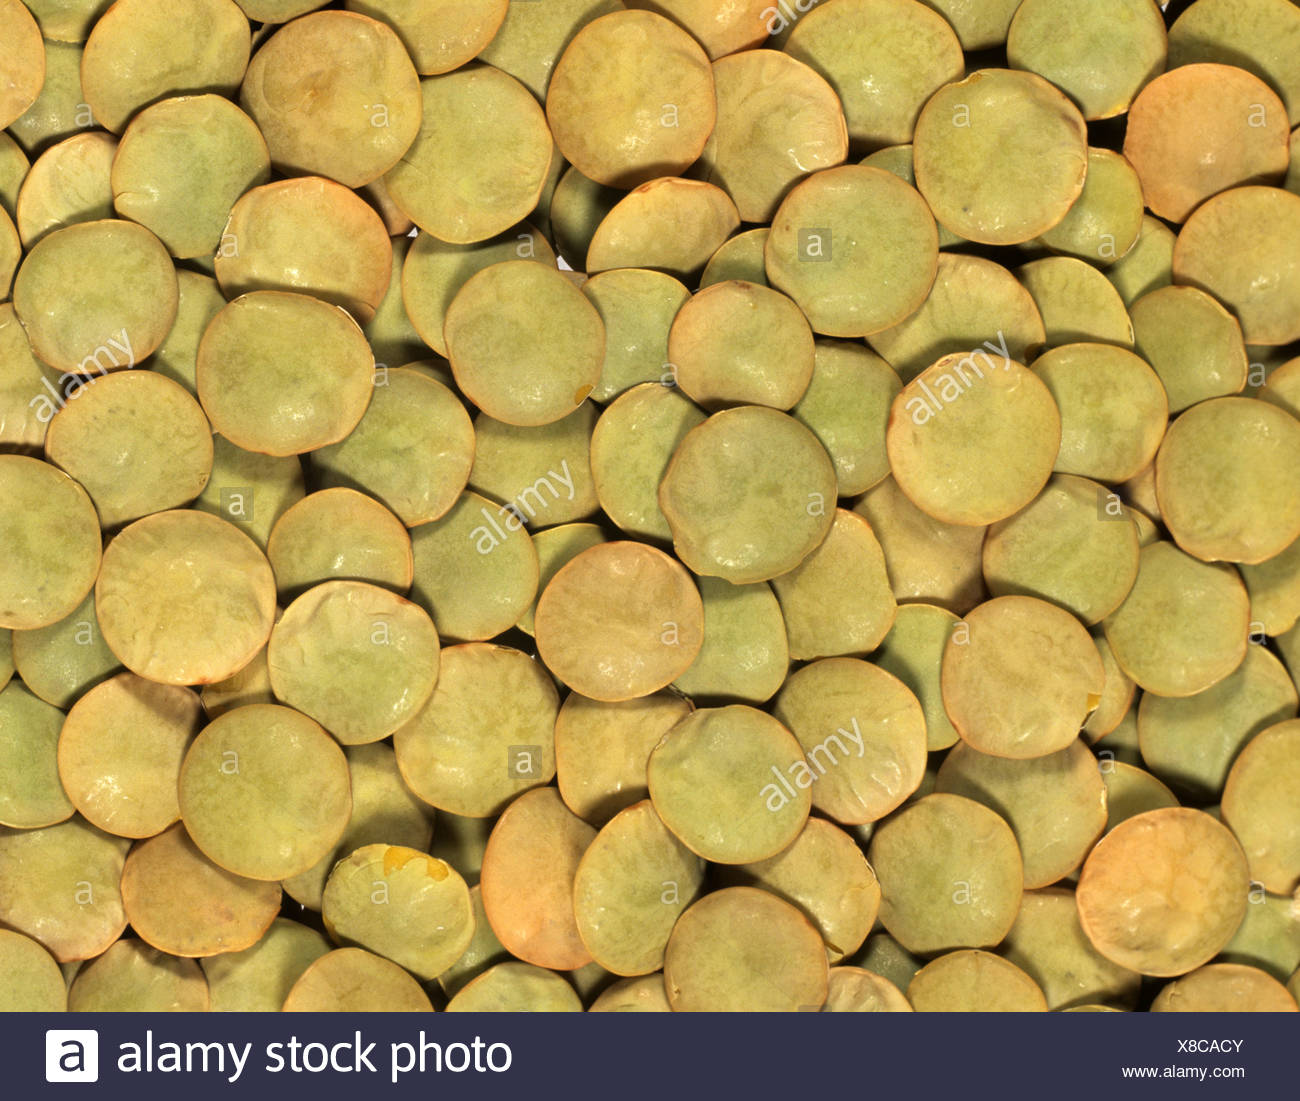 Green lentils (Lens culinaris) prepared for cooking a Canadian variety - Stock Image